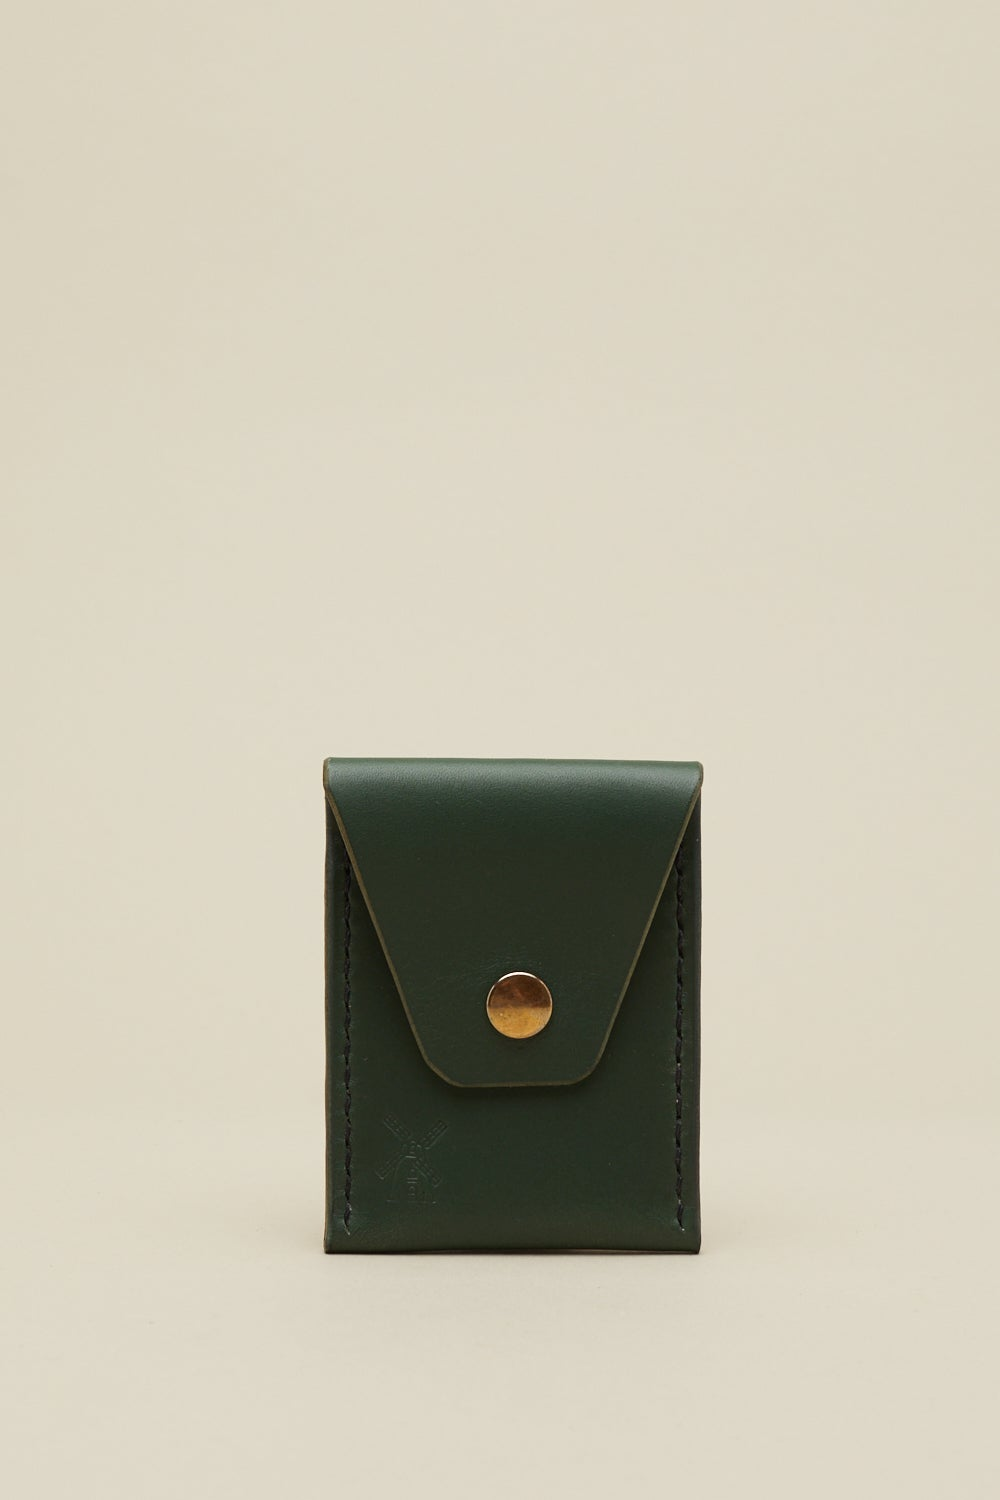 Image of Card Pouch in Racing Green